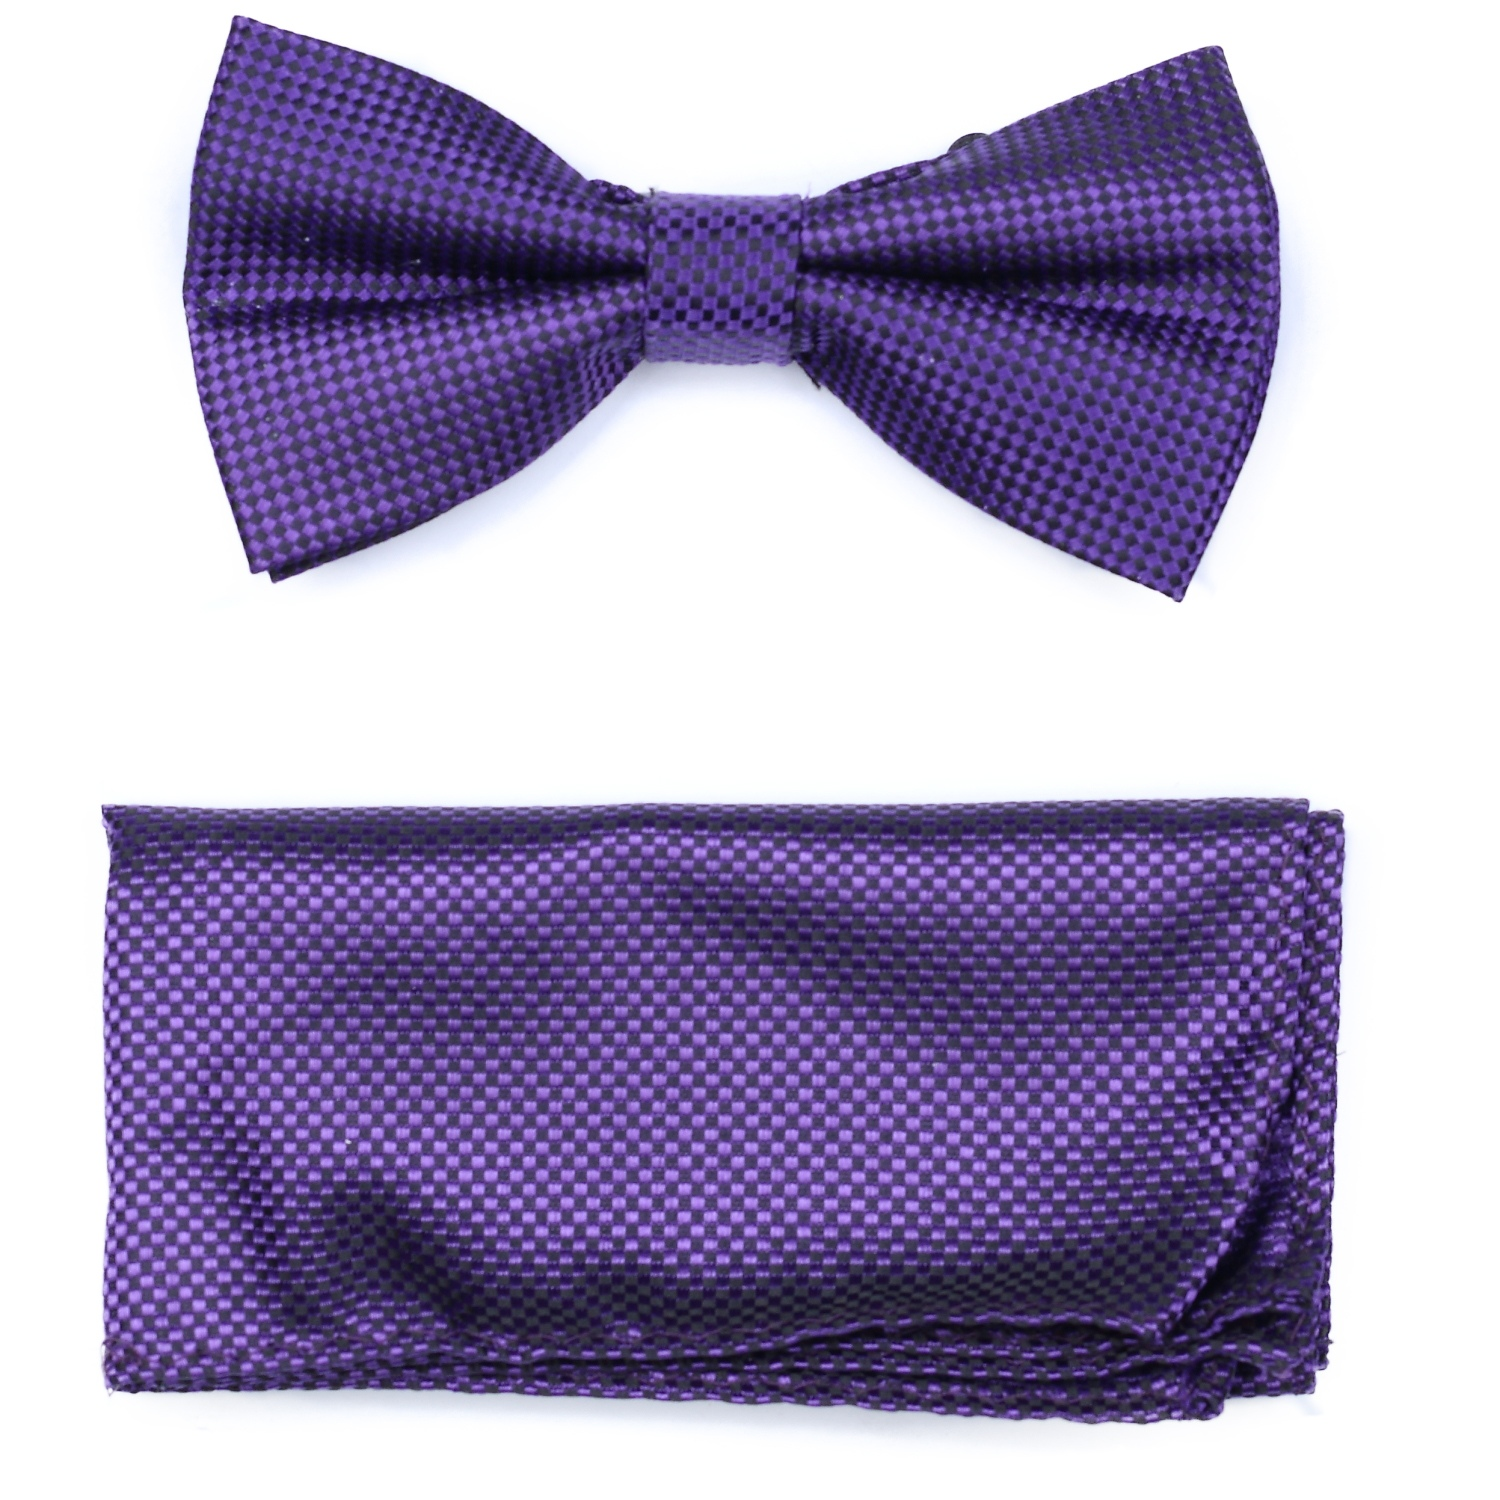 http://www.leadermode.com/148261/virtuose-papillon-pique-pochette-violet.jpg